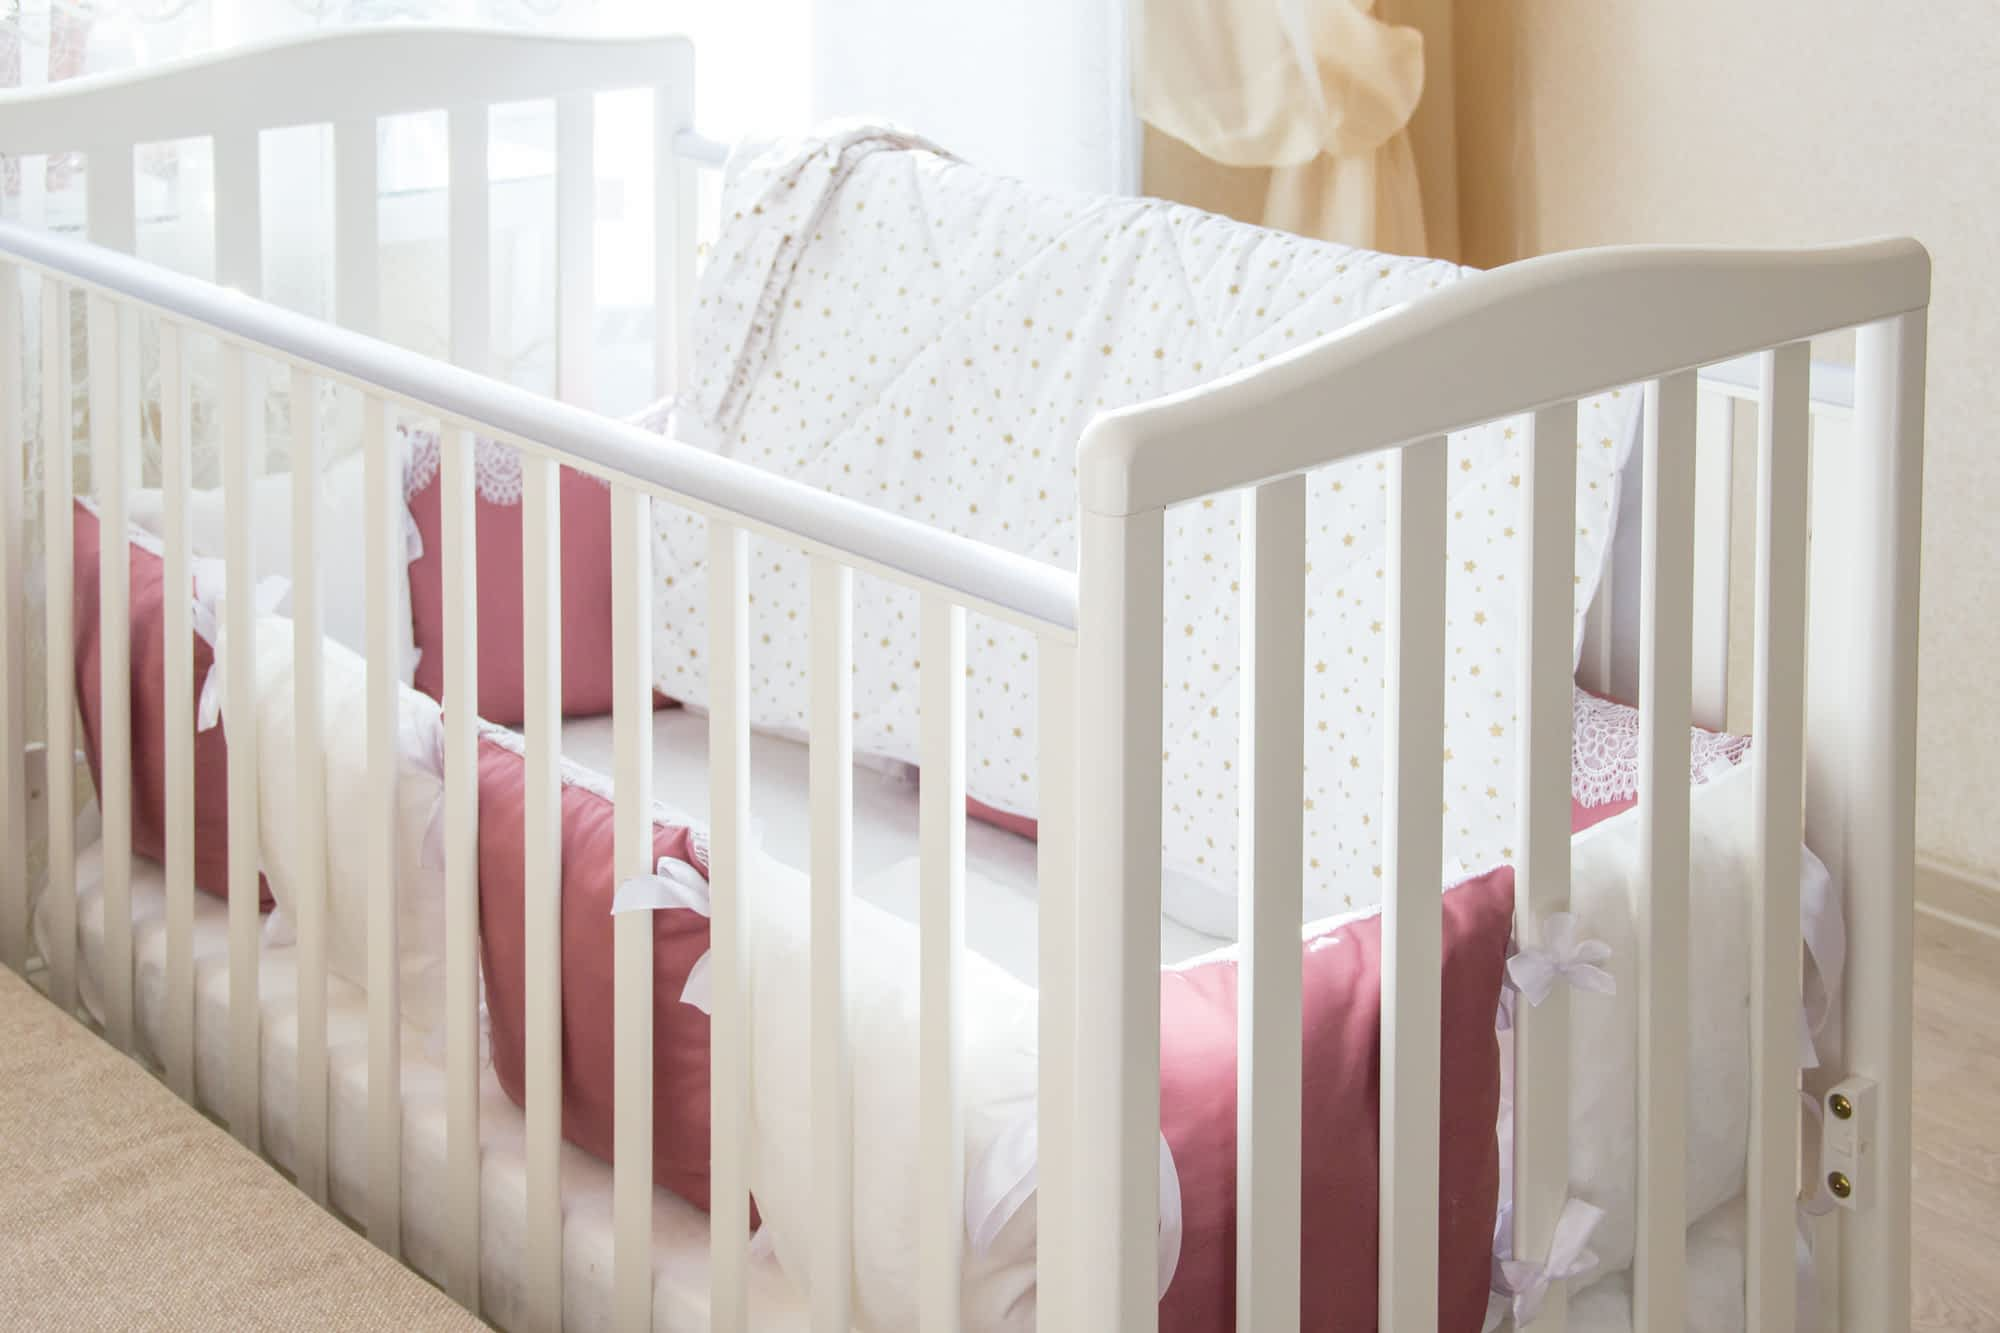 white crib with pink pillows - sleep training methods